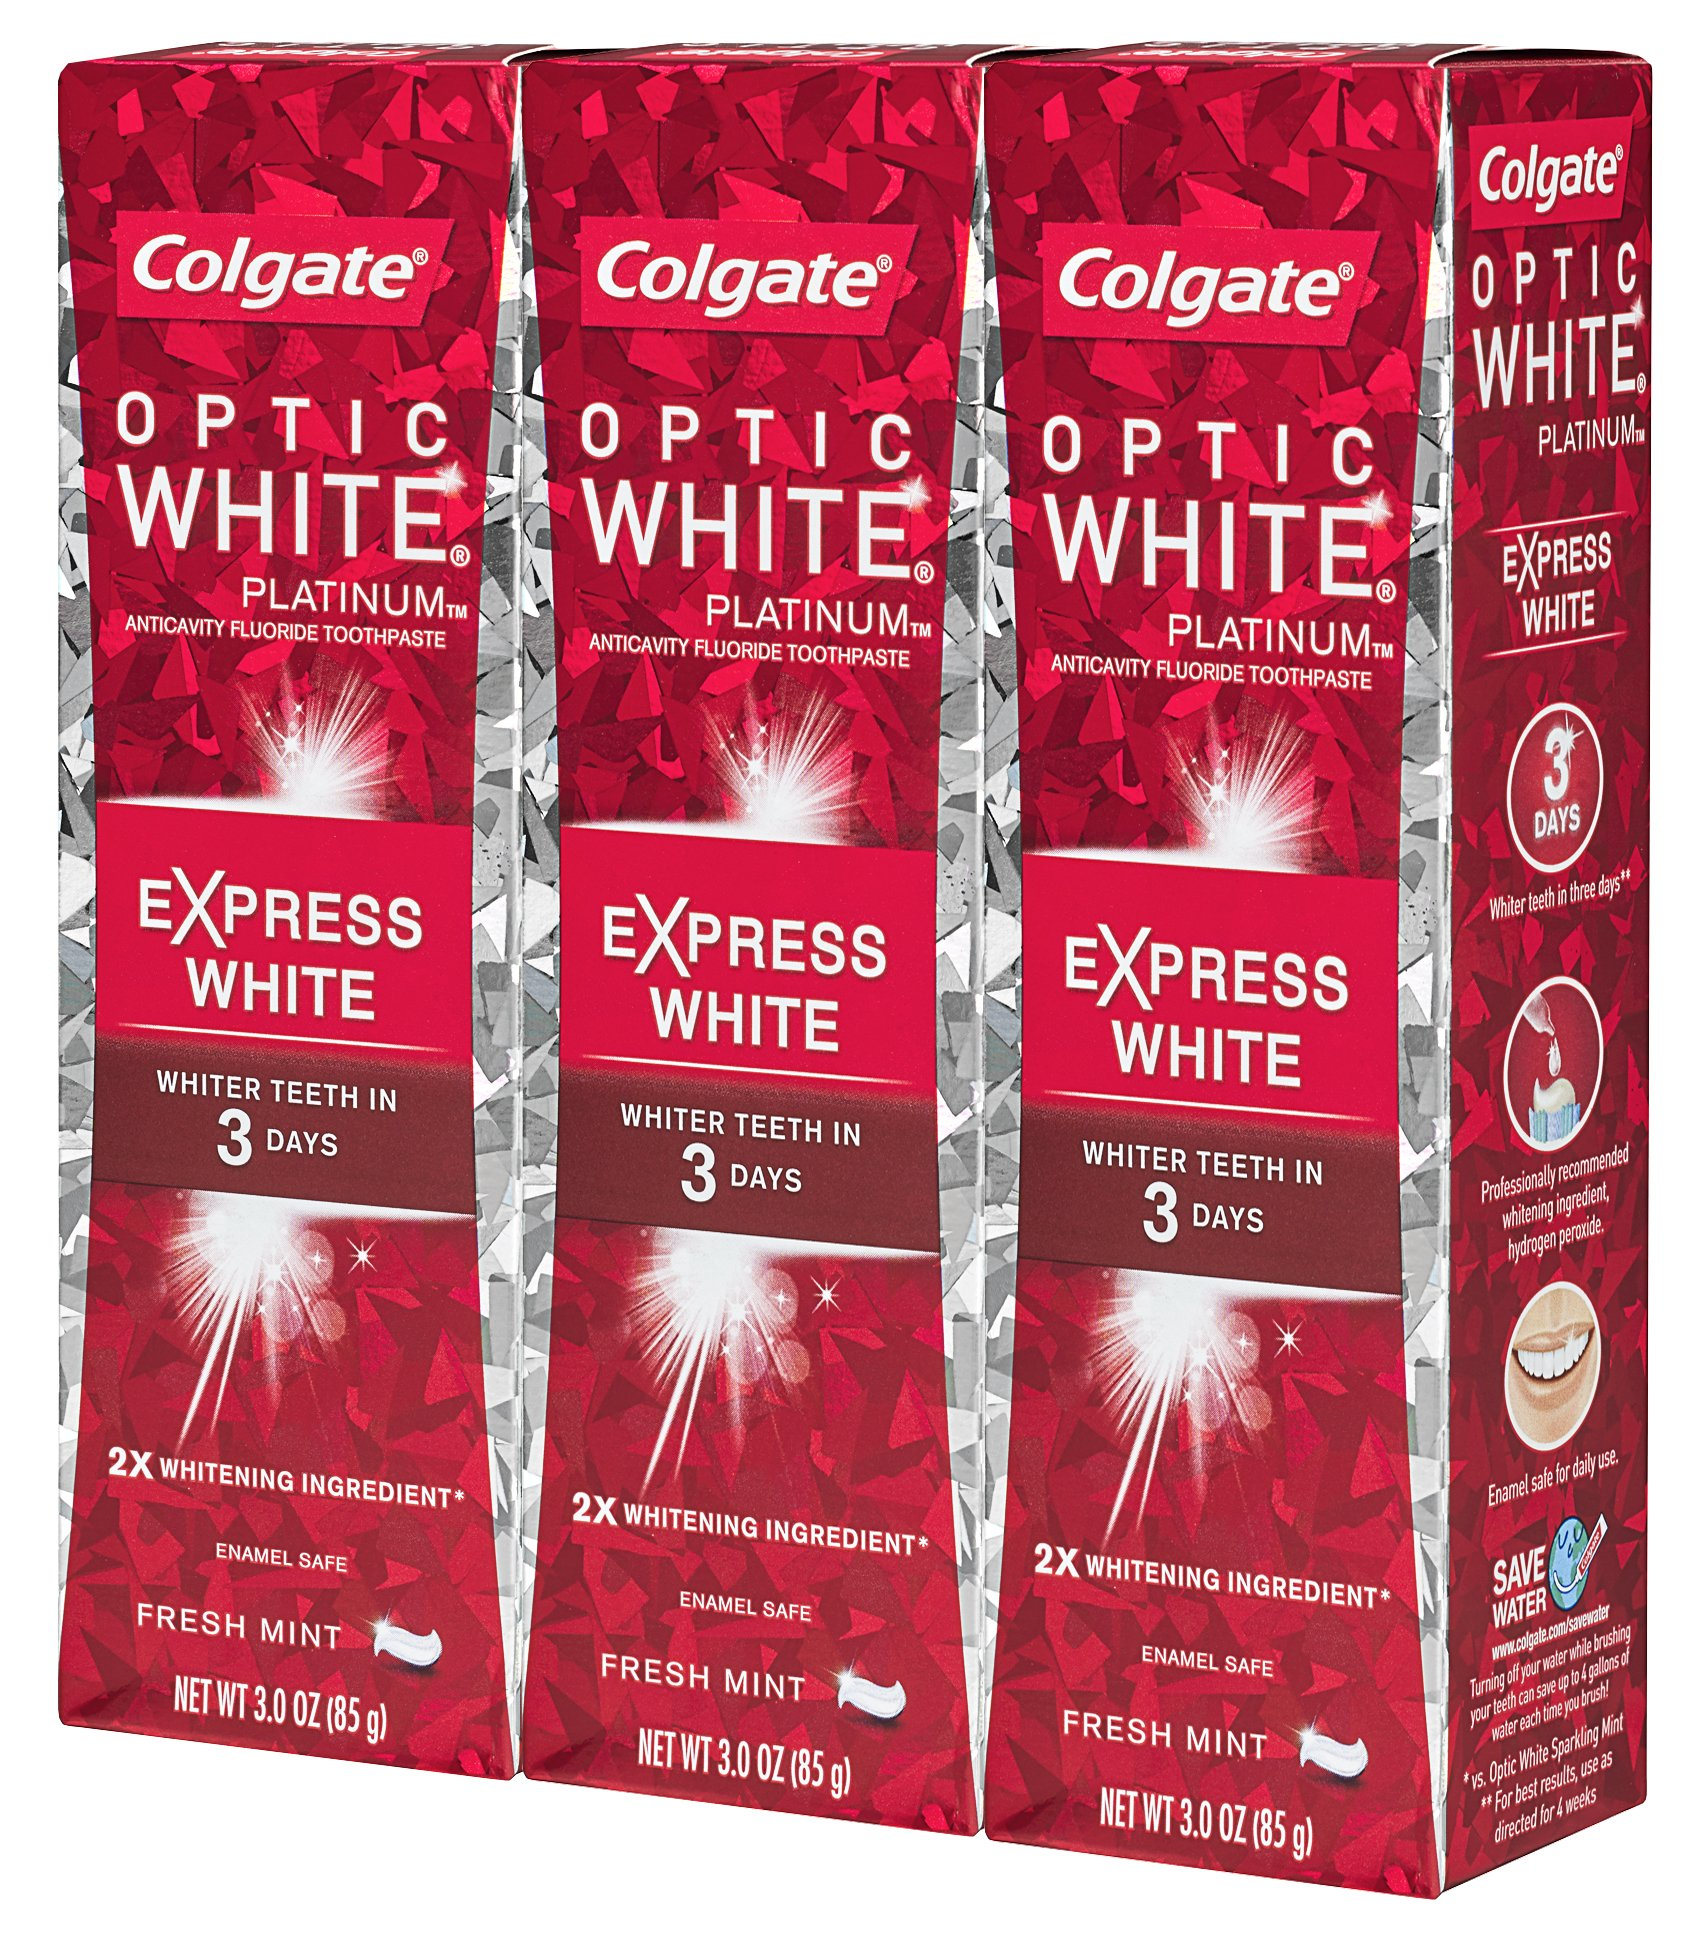 Colgate Optic White Express White Whitening Toothpaste - 3 ounce (3 Pack) by Colgate (Image #12)